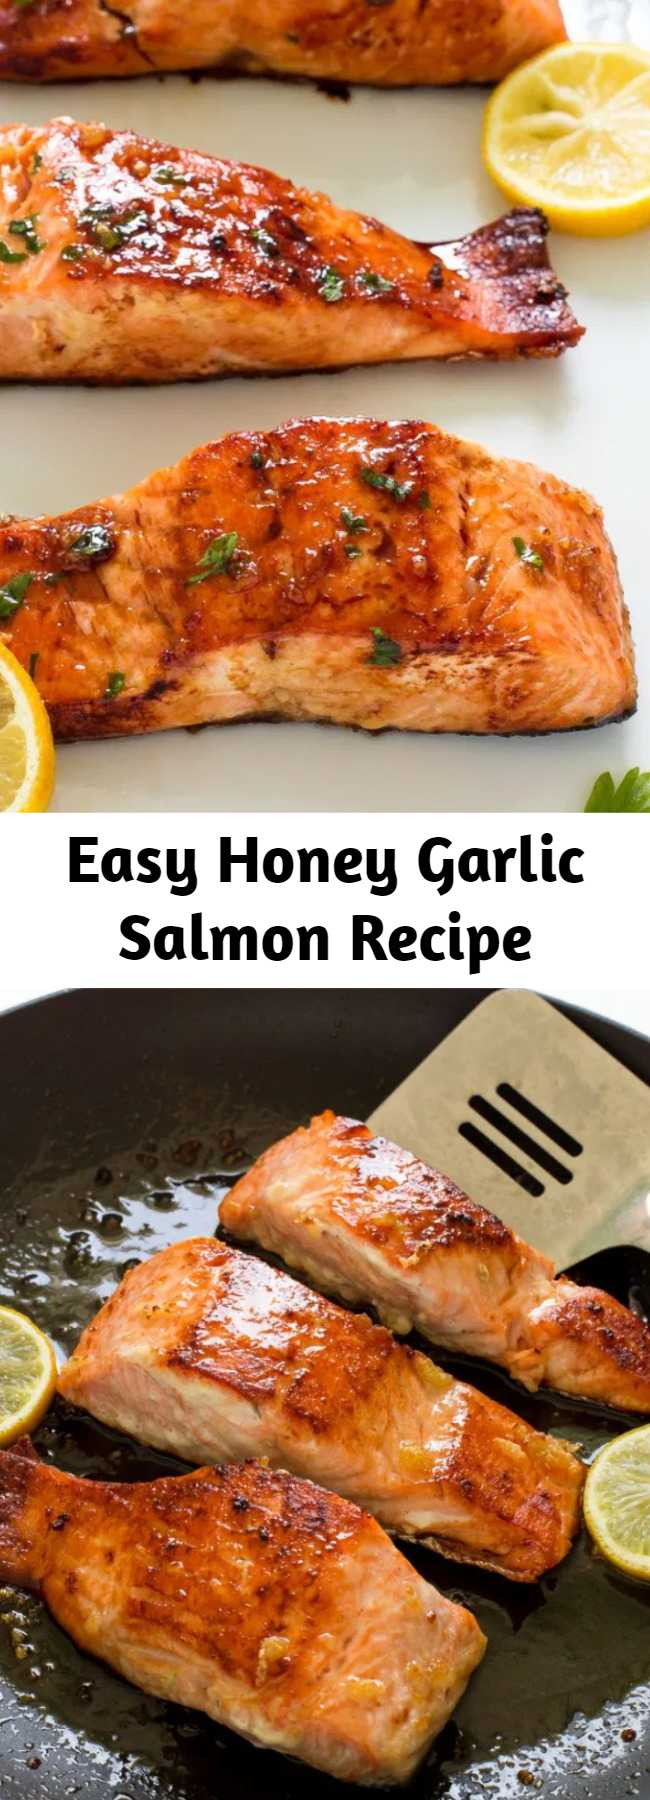 Easy Honey Garlic Salmon Recipe - Easy Honey Garlic Salmon. Pan fried and served with a sweet and sticky honey lemon glaze. Only 5 ingredients and ready in less than 20 minutes! This salmon is perfect for busy weeknight dinners! #recipe #honey #garlic #glazed #salmon #seafood